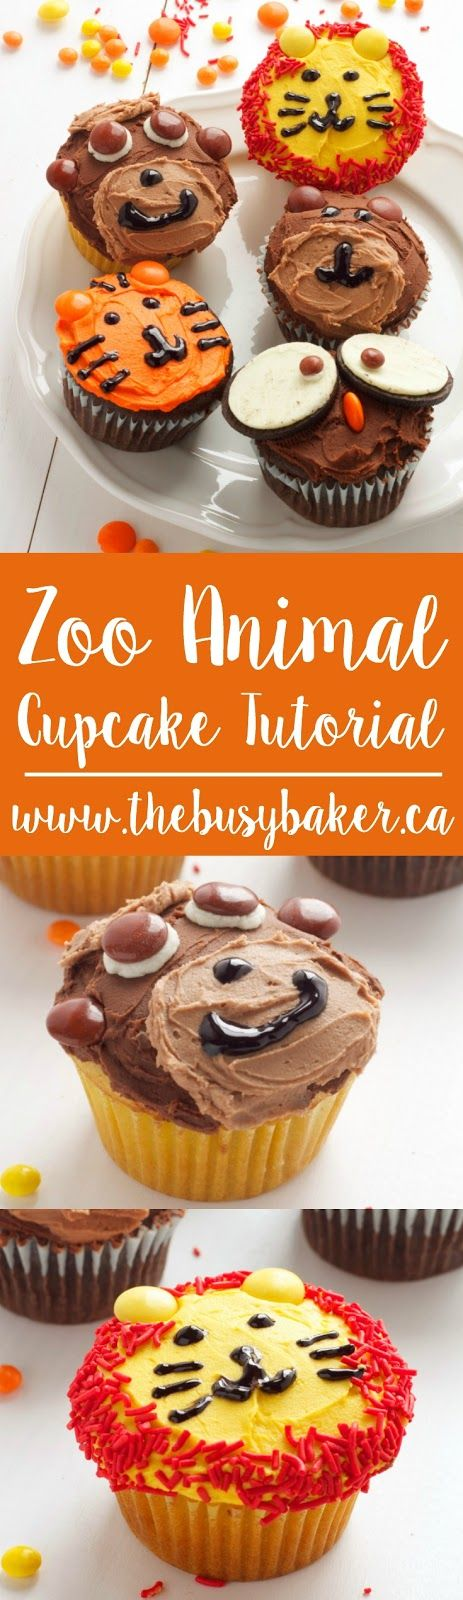 These zoo animals cupcakes are perfect for the young party animal in your life! And they're so easy to make with just a few simple, easy-to-find ingredients! Be sure to check out the full VIDEO TUTORIAL HERE!   Hungry for more? Pin this recipe on Pinterest! Follow me! Like my page on Facebook!   Subscribe!...